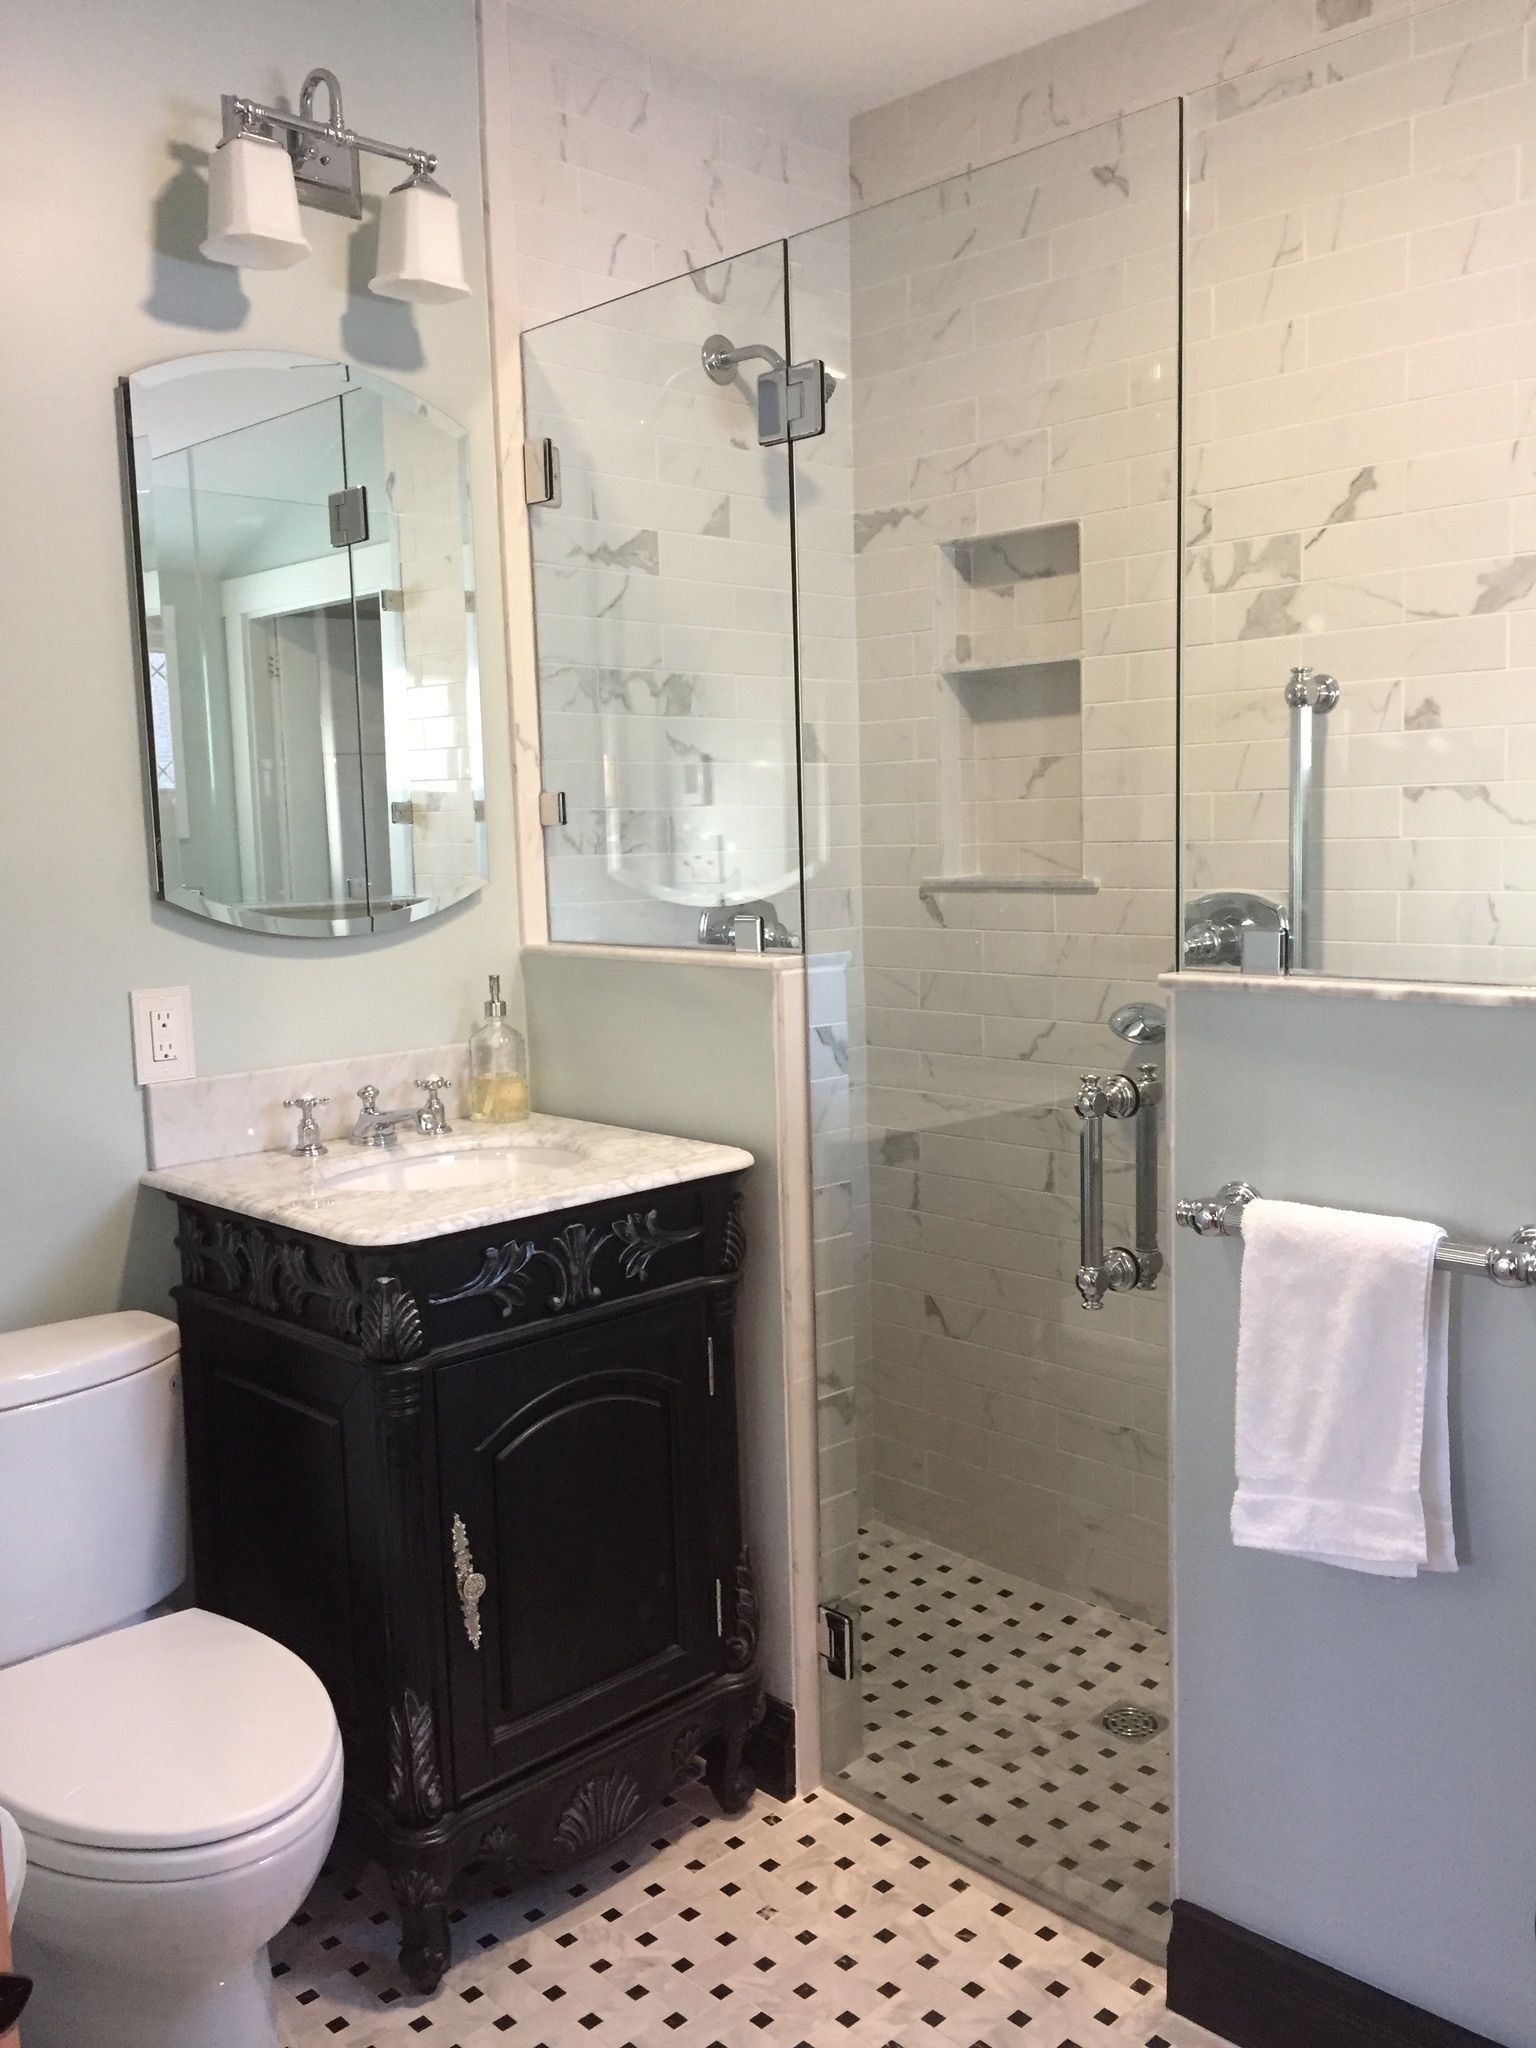 Black And White Bath Small Space Vintage Bathroom With Walk In Shower Small Space Bathroom Design Small Remodel Diy Bathroom Remodel